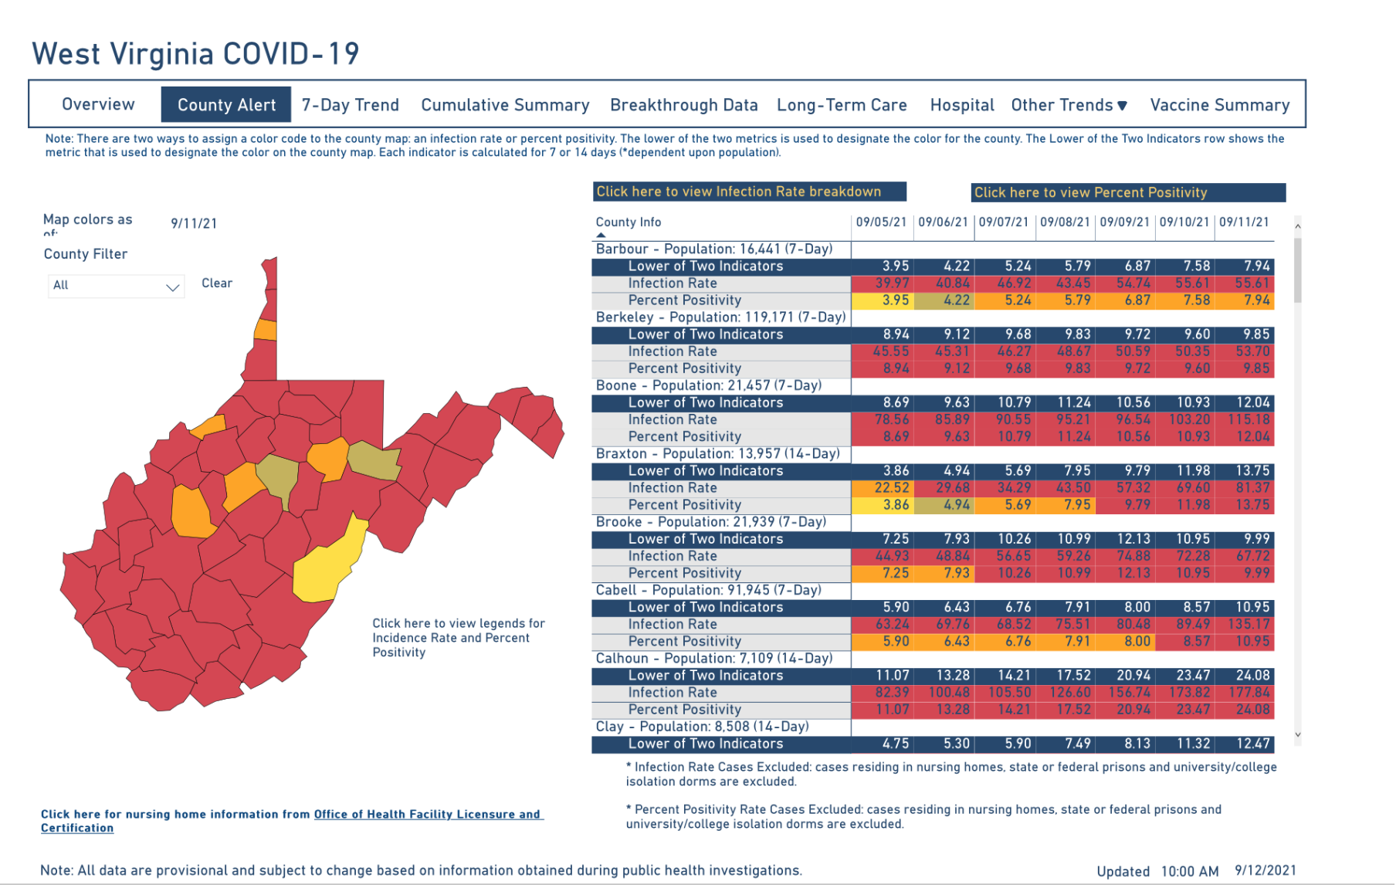 West Virginia COVID-19 County Alert Map, 9-12-2021